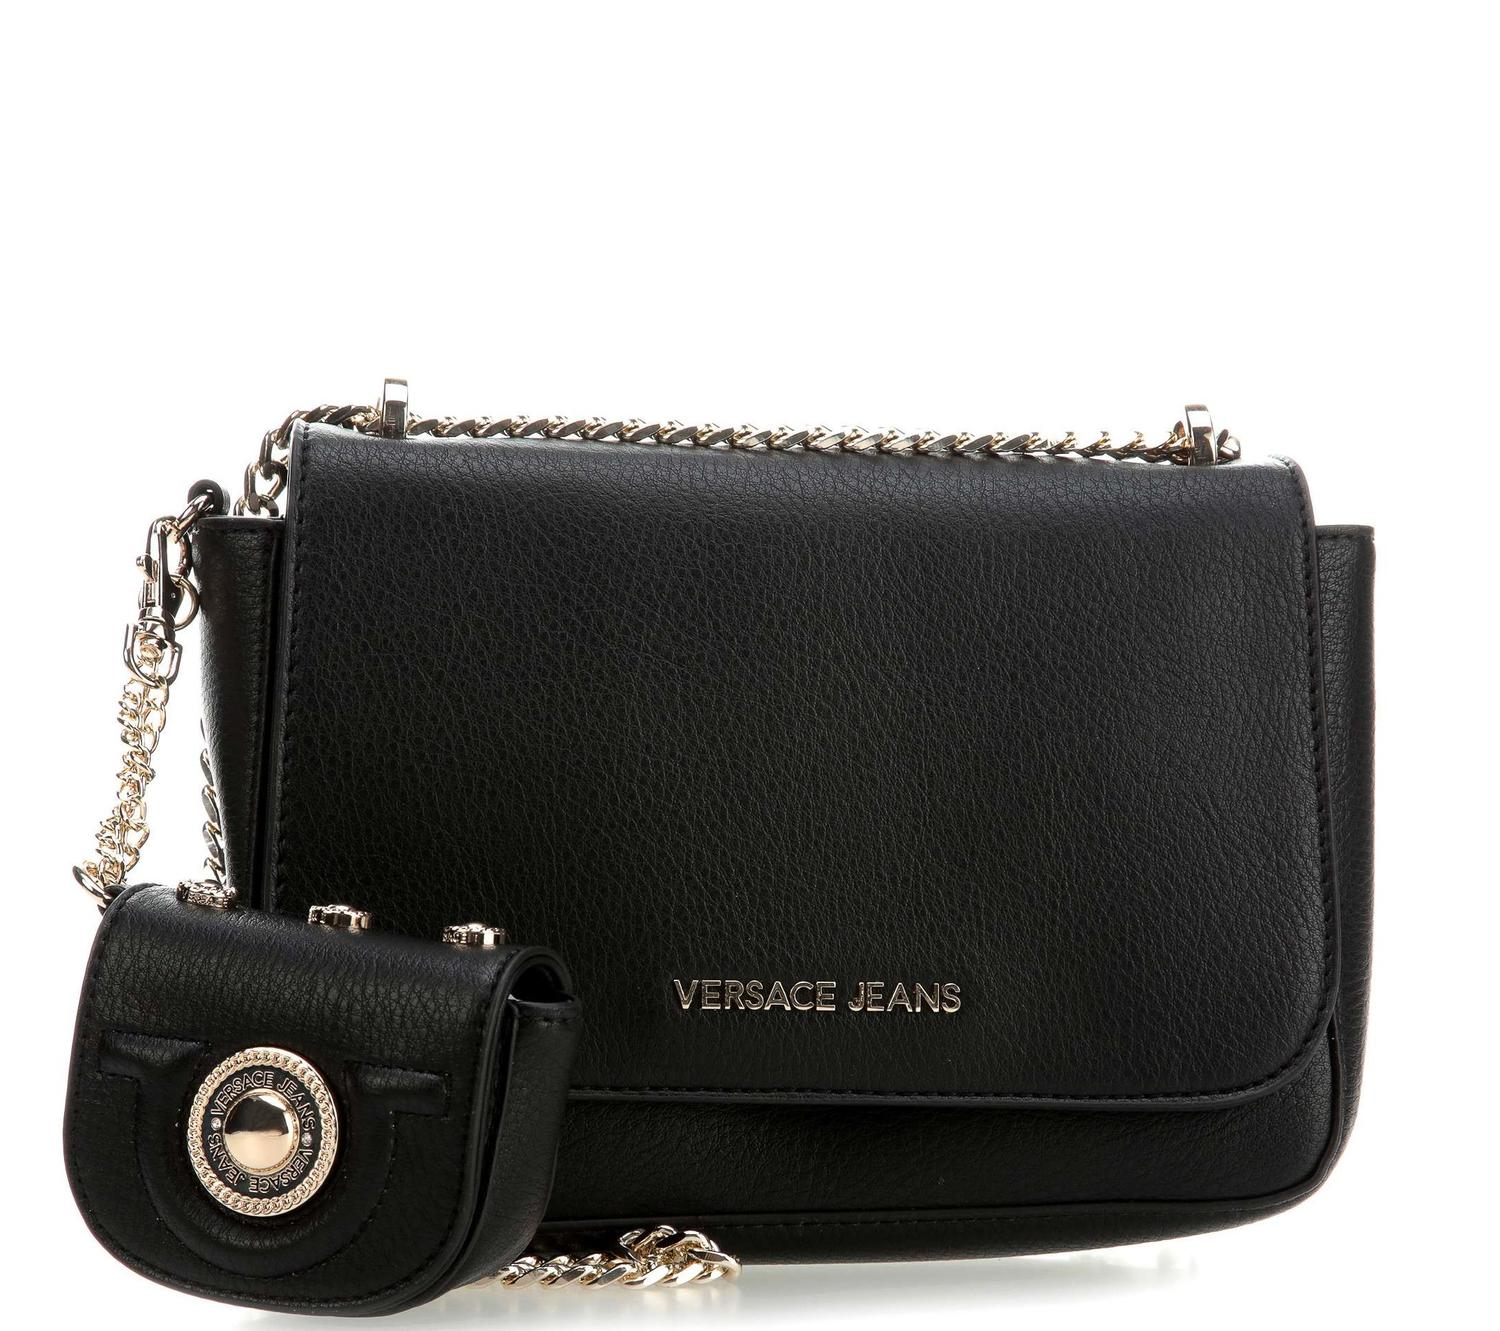 6b486ad62b Versace Jeans Shoulder Bag Black - Shop Online At Best Prices!